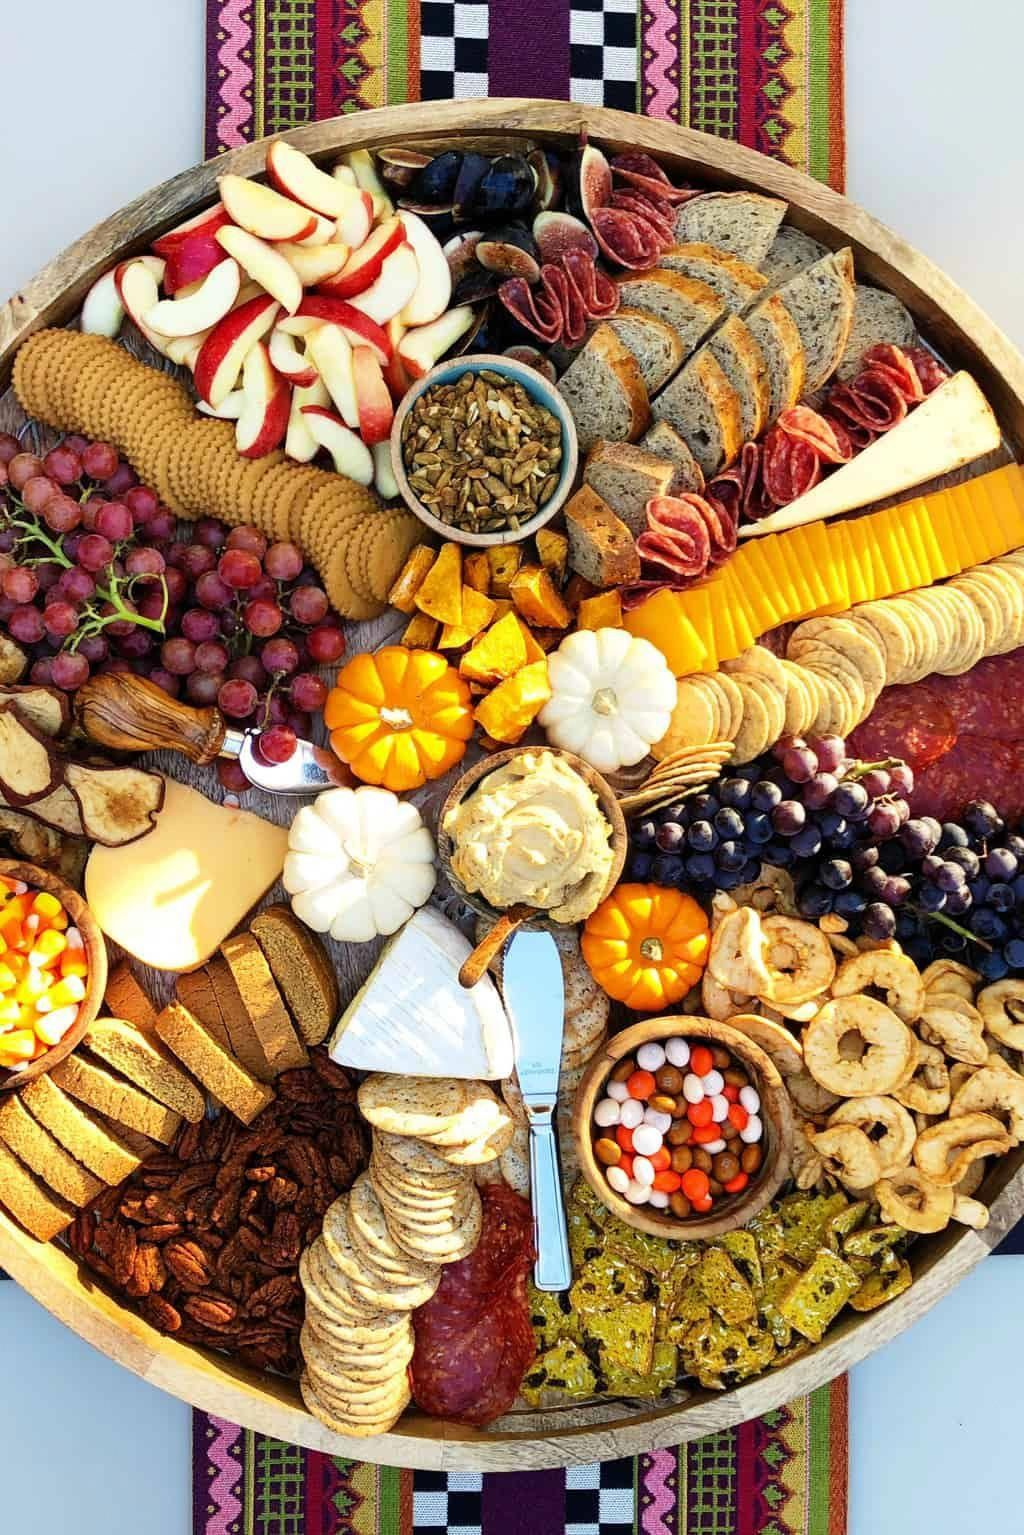 Fall Epic Charcuterie Board for casual entertaining, filled with pumpkin treats, best cheese and cured meats, with fruits, nuts, and crackers! #epic #epiccharcuterie #fallcharcuterie #charcuterieboard #partyfood #fallfood #appetizer #halloween #fallappetizers